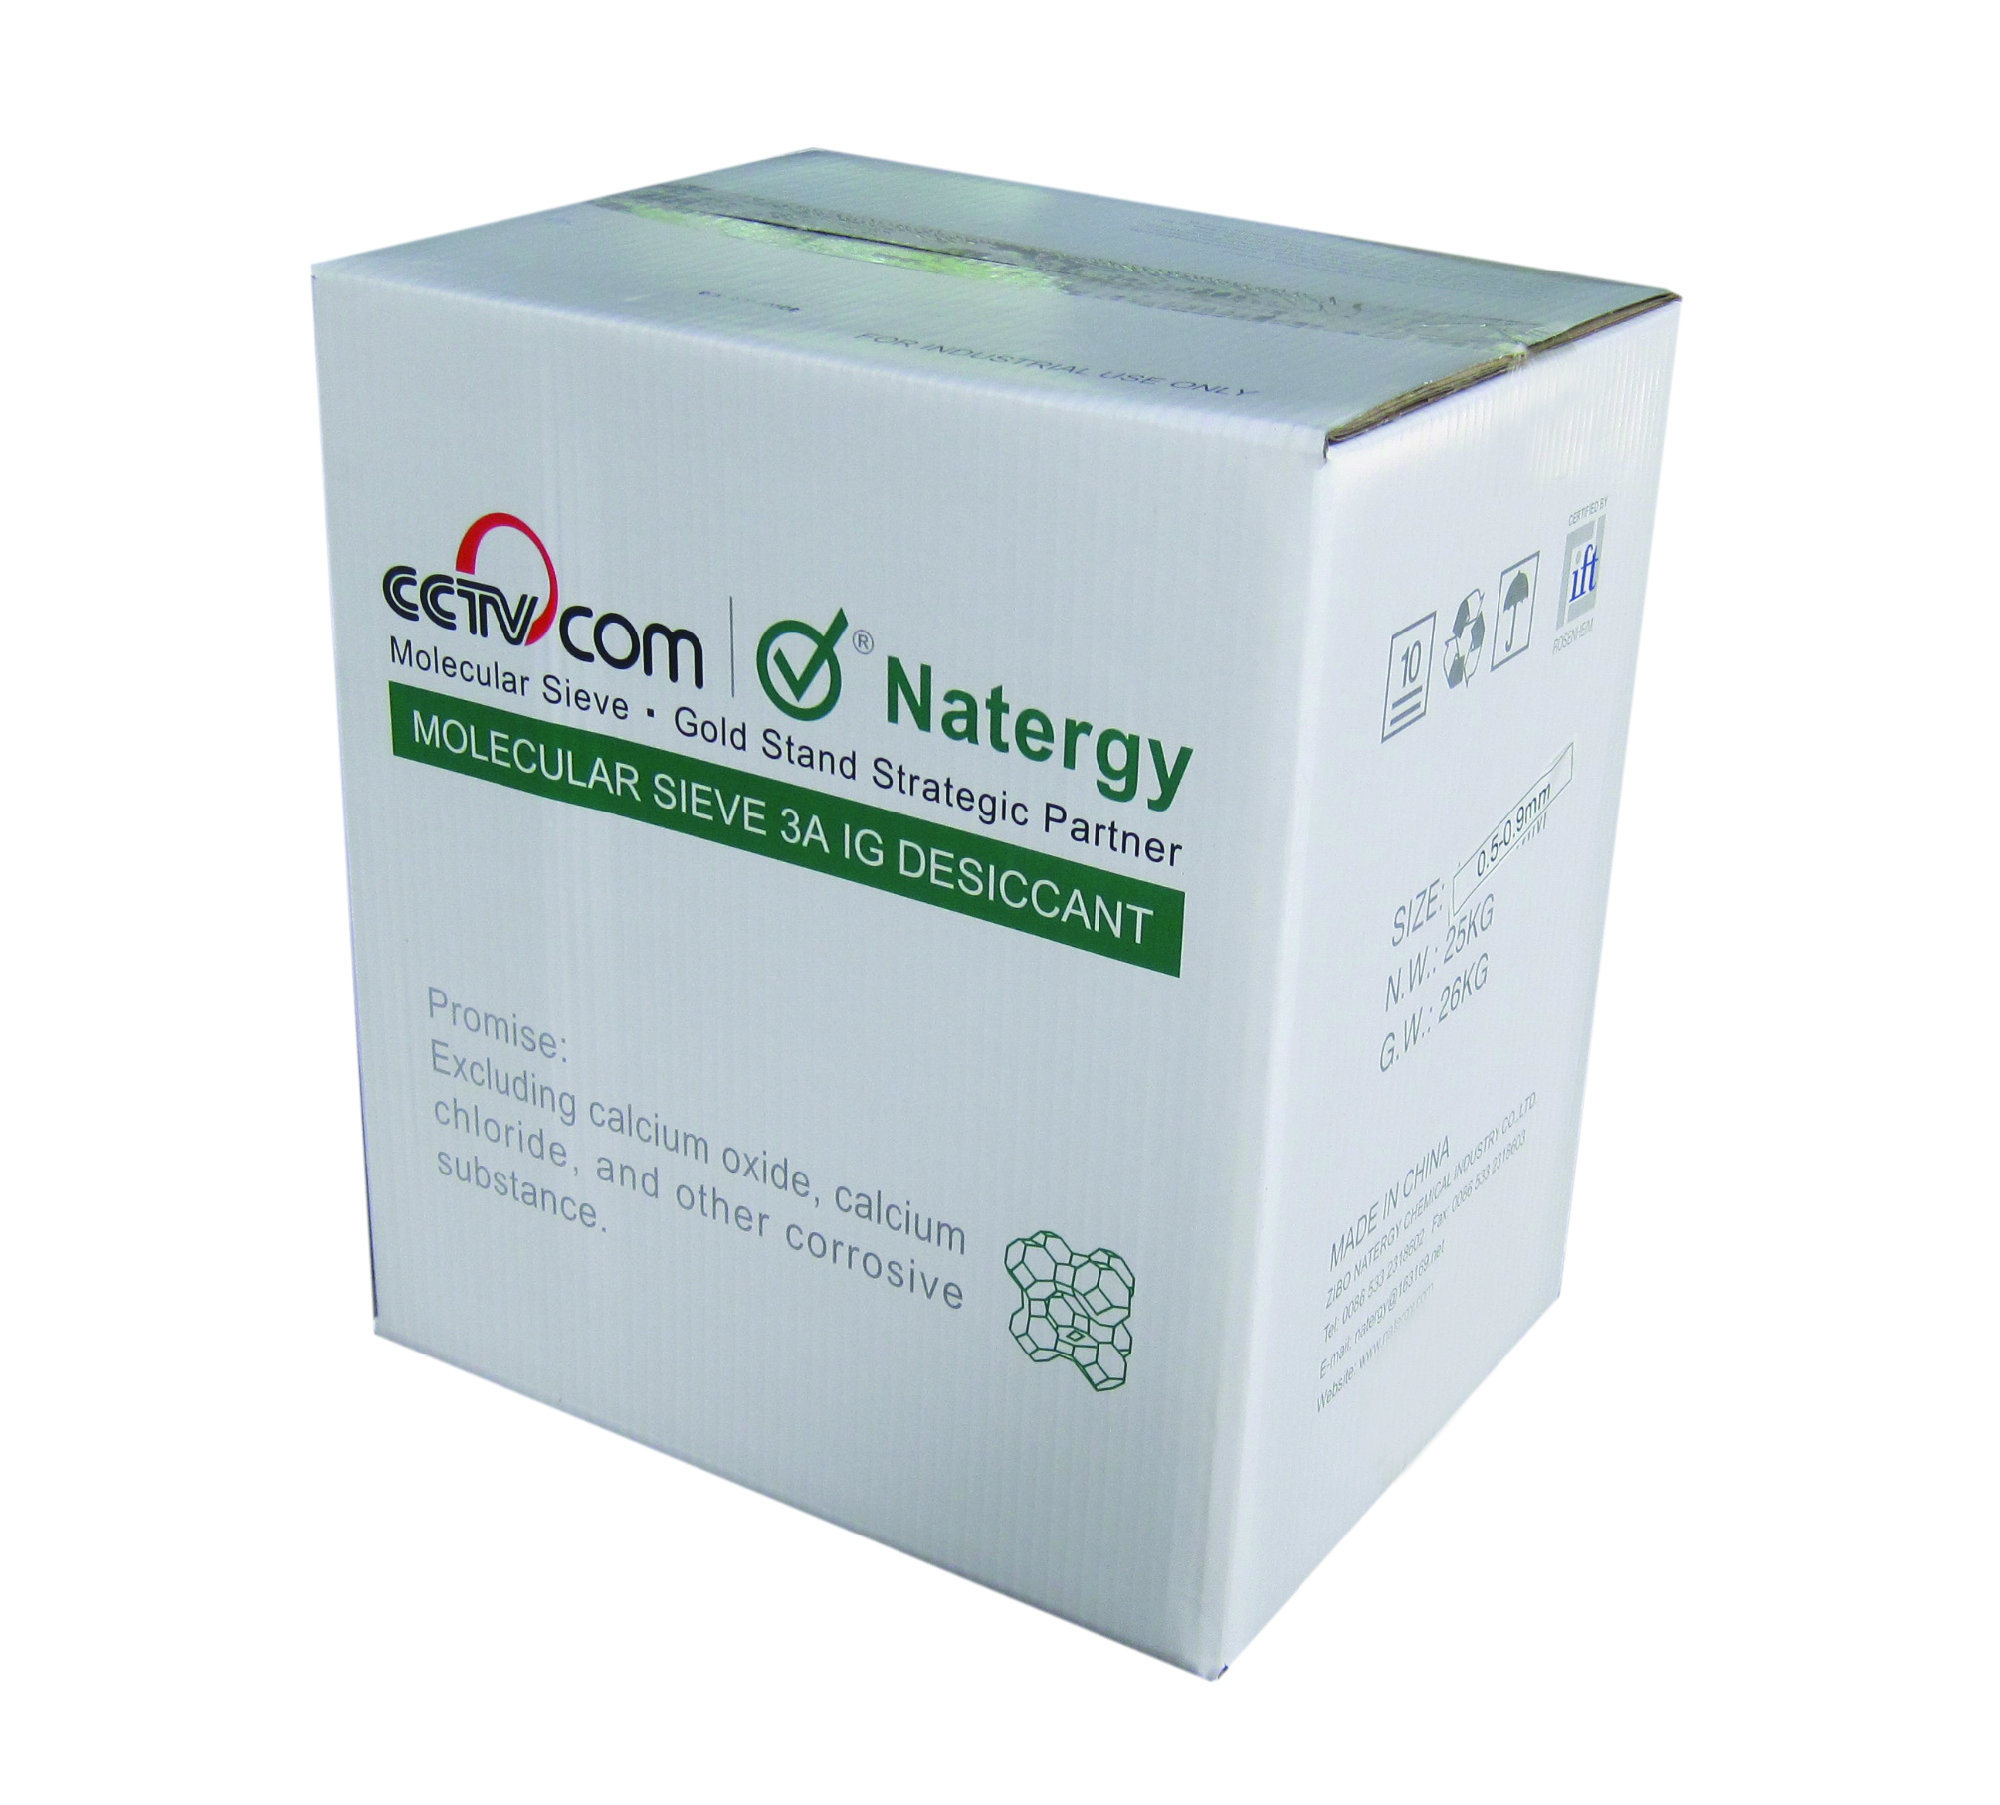 Carton Box Packing Molecular Sieve Desiccant